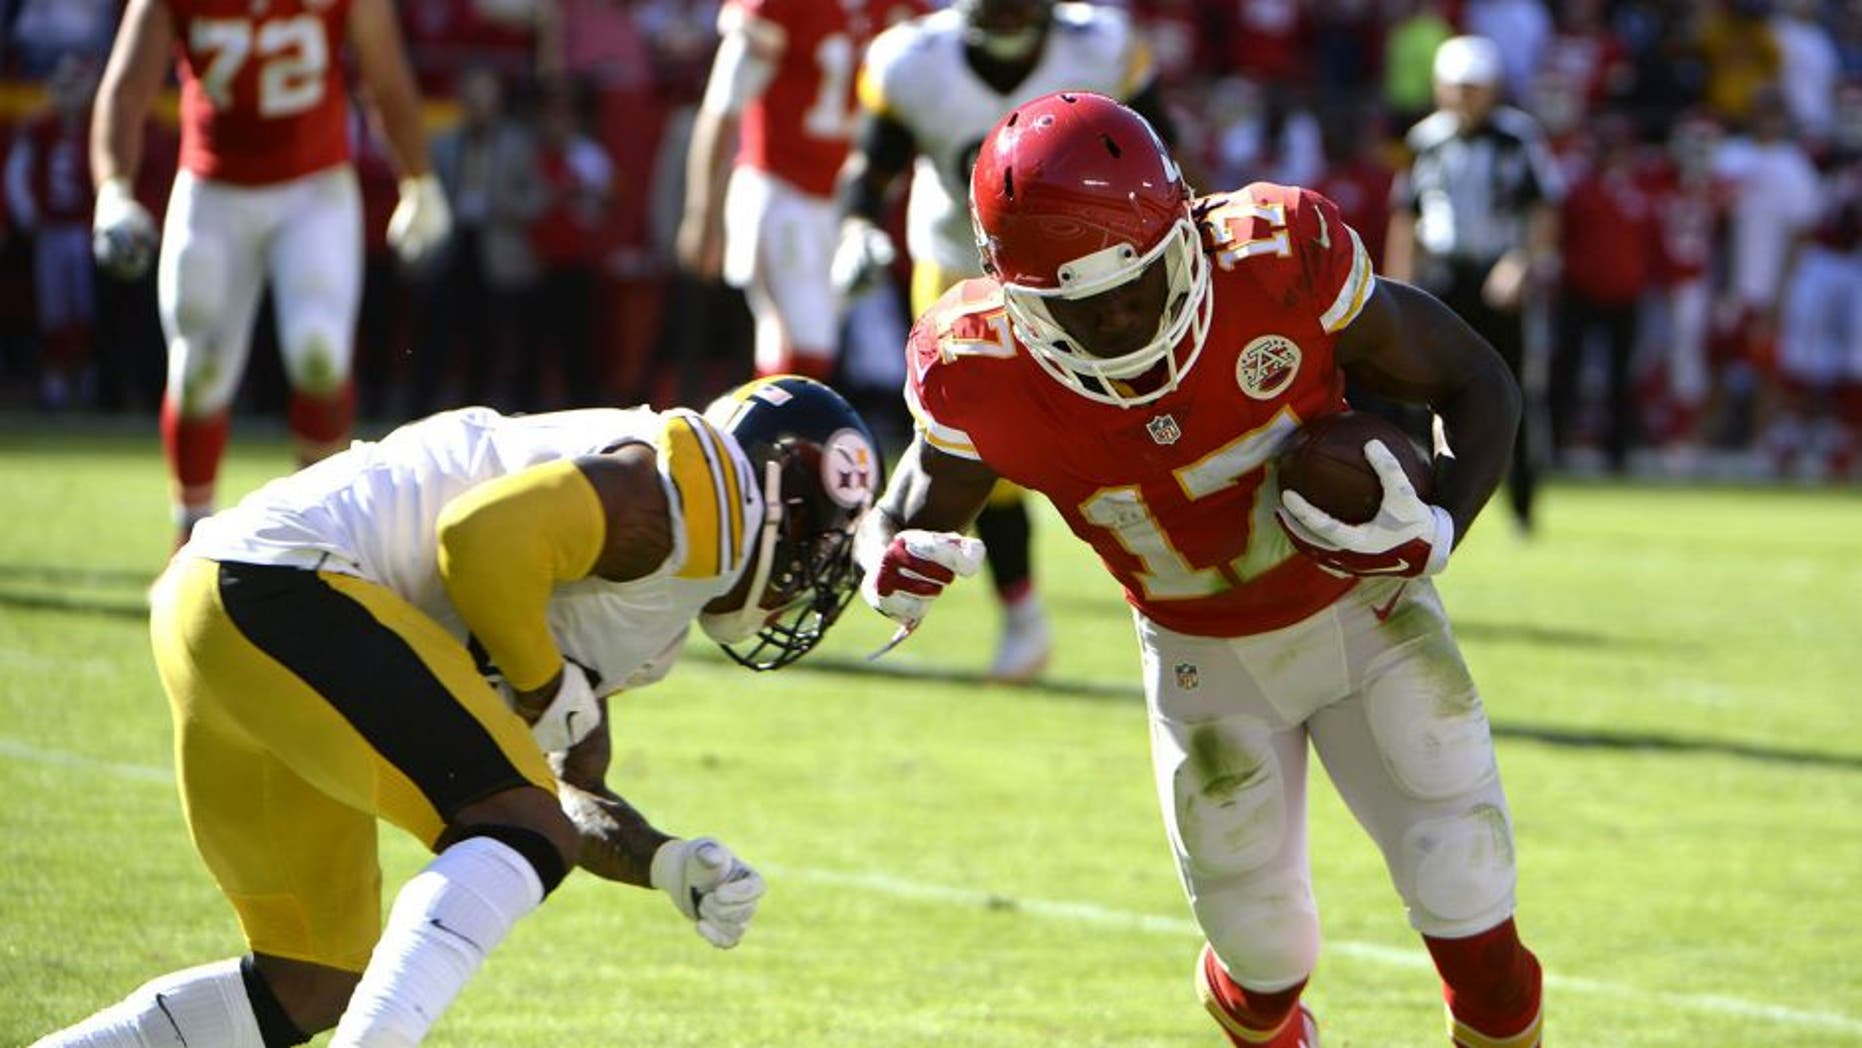 Oct 25, 2015; Kansas City, MO, USA; Kansas City Chiefs wide receiver Chris Conley (17) catches a pass for a touchdown against the Pittsburgh Steelers in the second half at Arrowhead Stadium. Kansas City won 23-13. Mandatory Credit: John Rieger-USA TODAY Sports